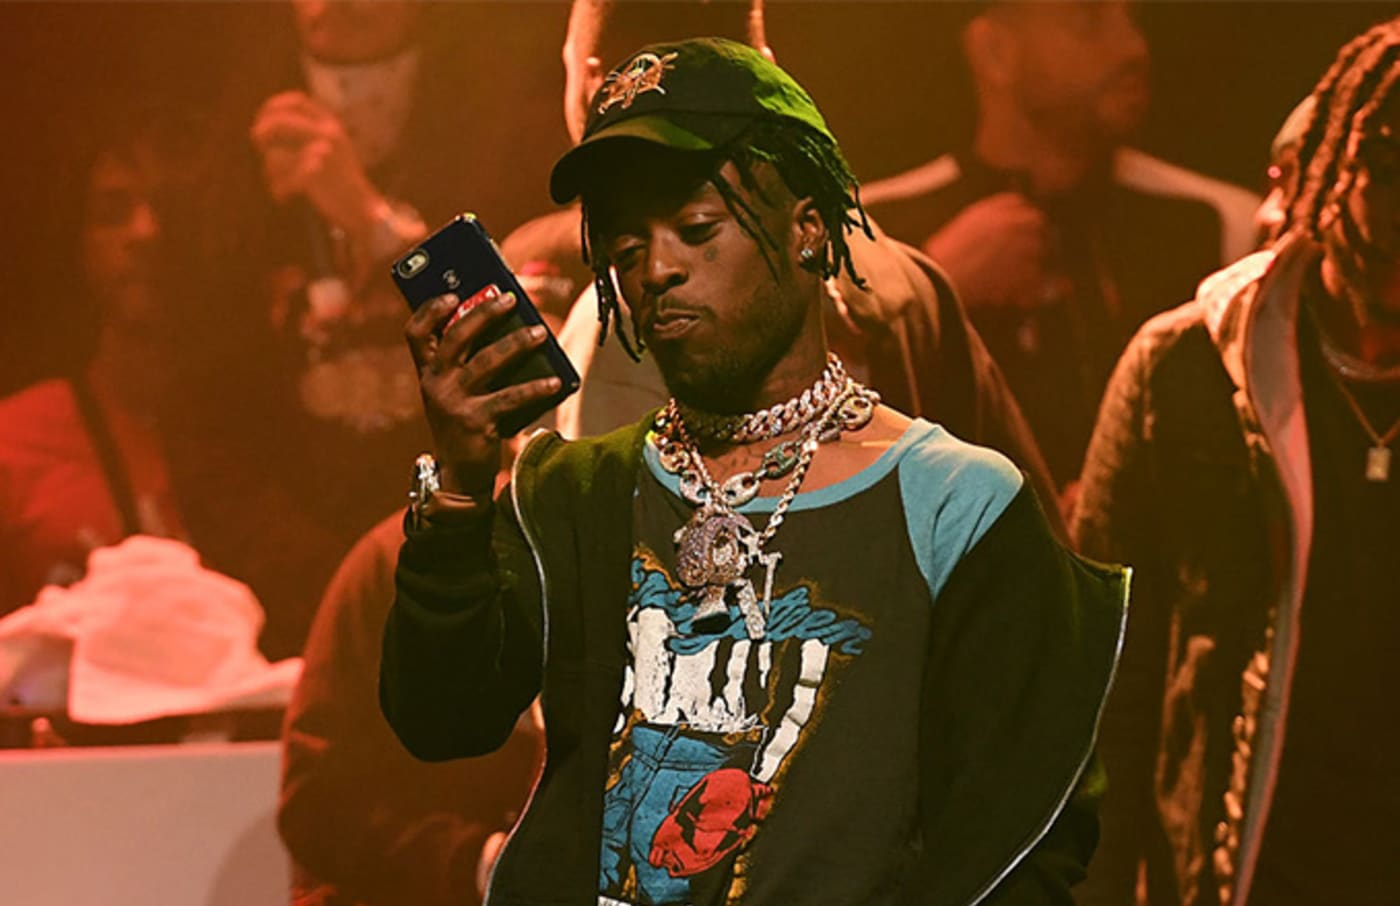 This is a photo of Lil Uzi Vert.